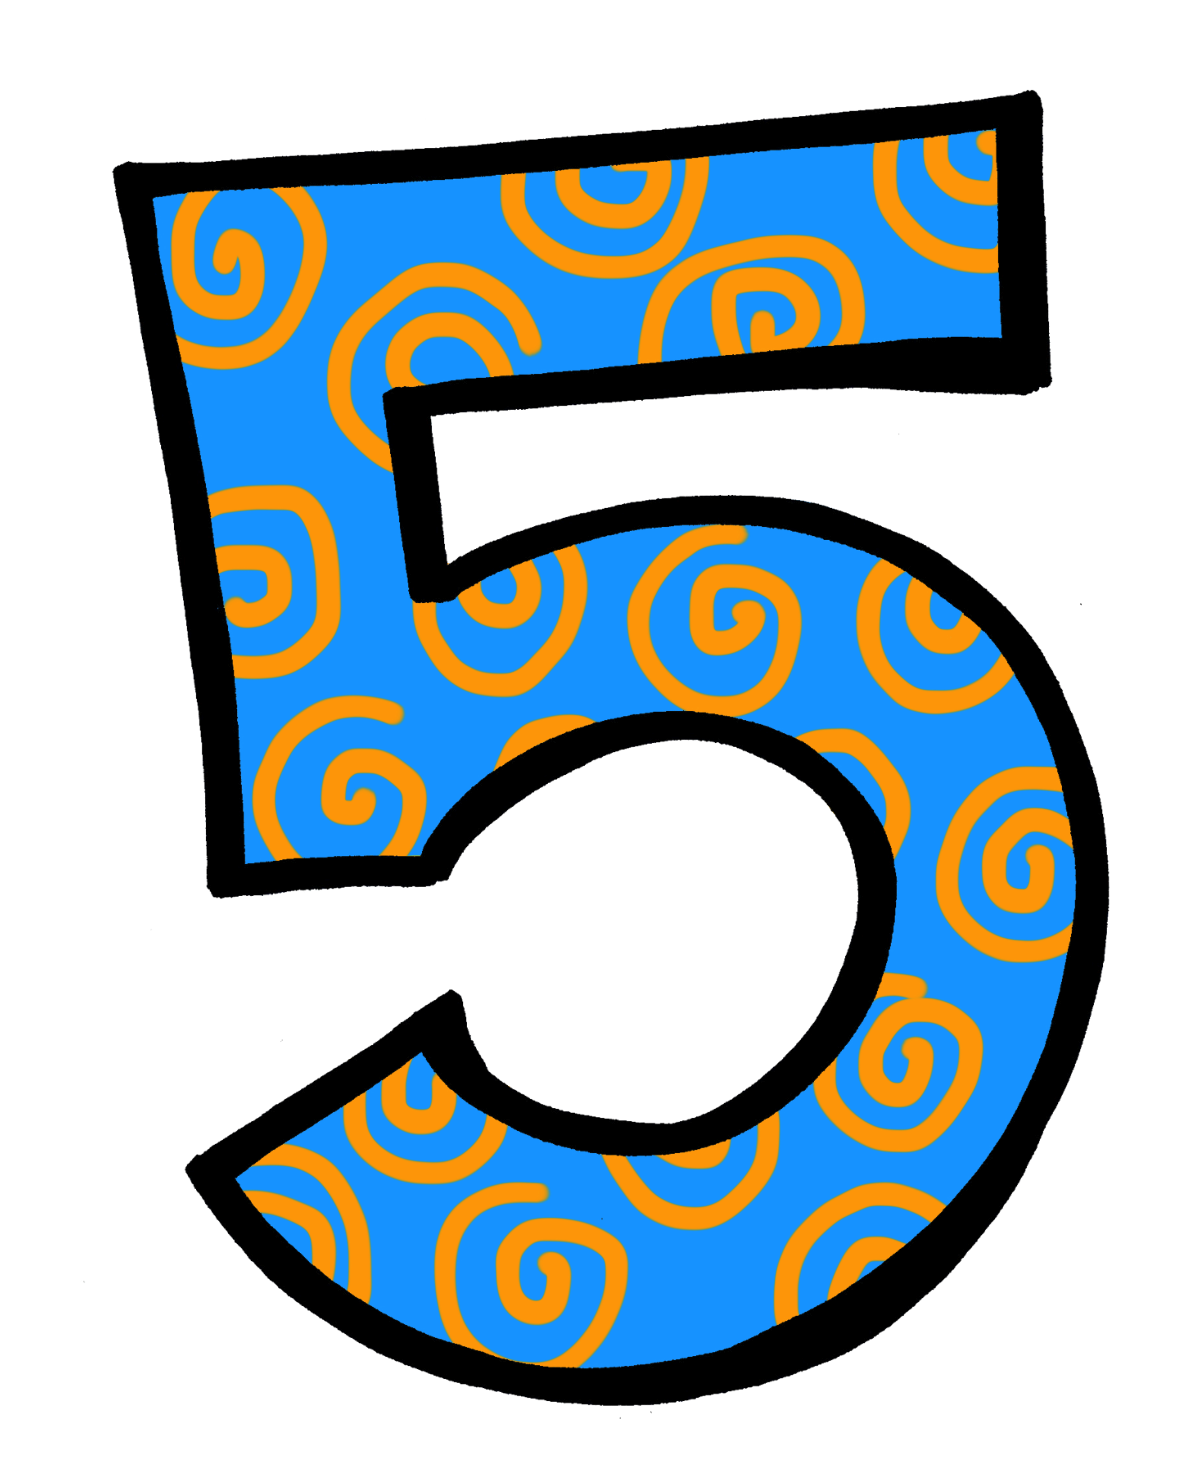 Individual numbers clipart.